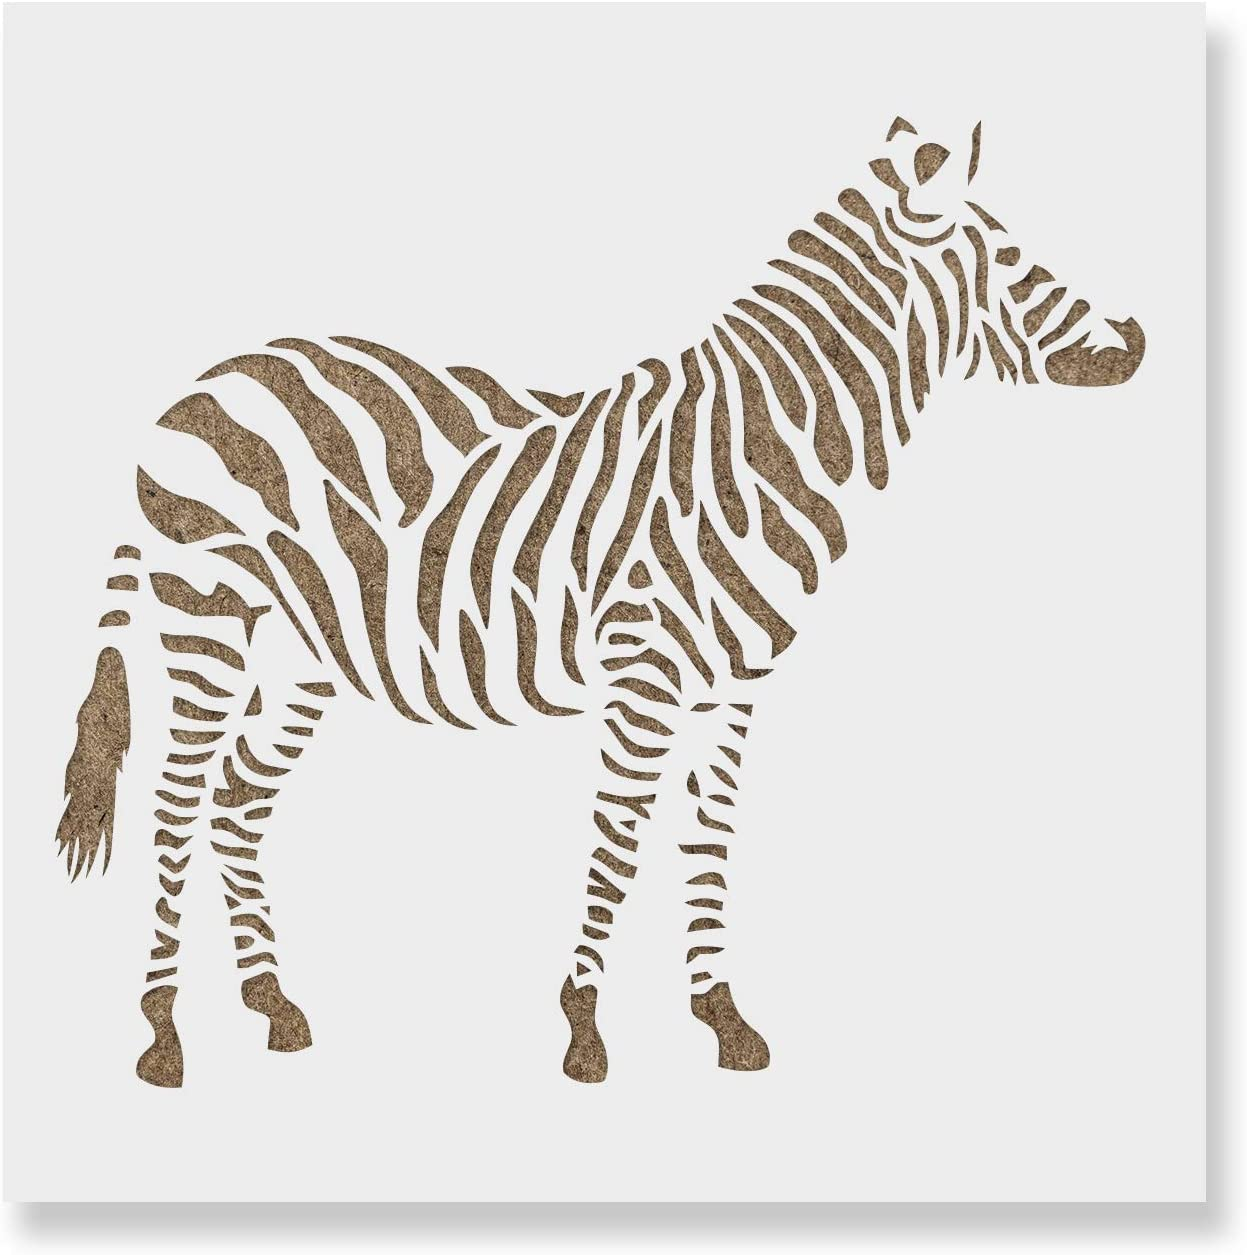 Fabric OBUY Zebra DIY Craft Hollow Layering Stencils for Painting on Wood Reusable 8.26 x 11.61 inch Mylar Template Walls,Decorative Airbrush More